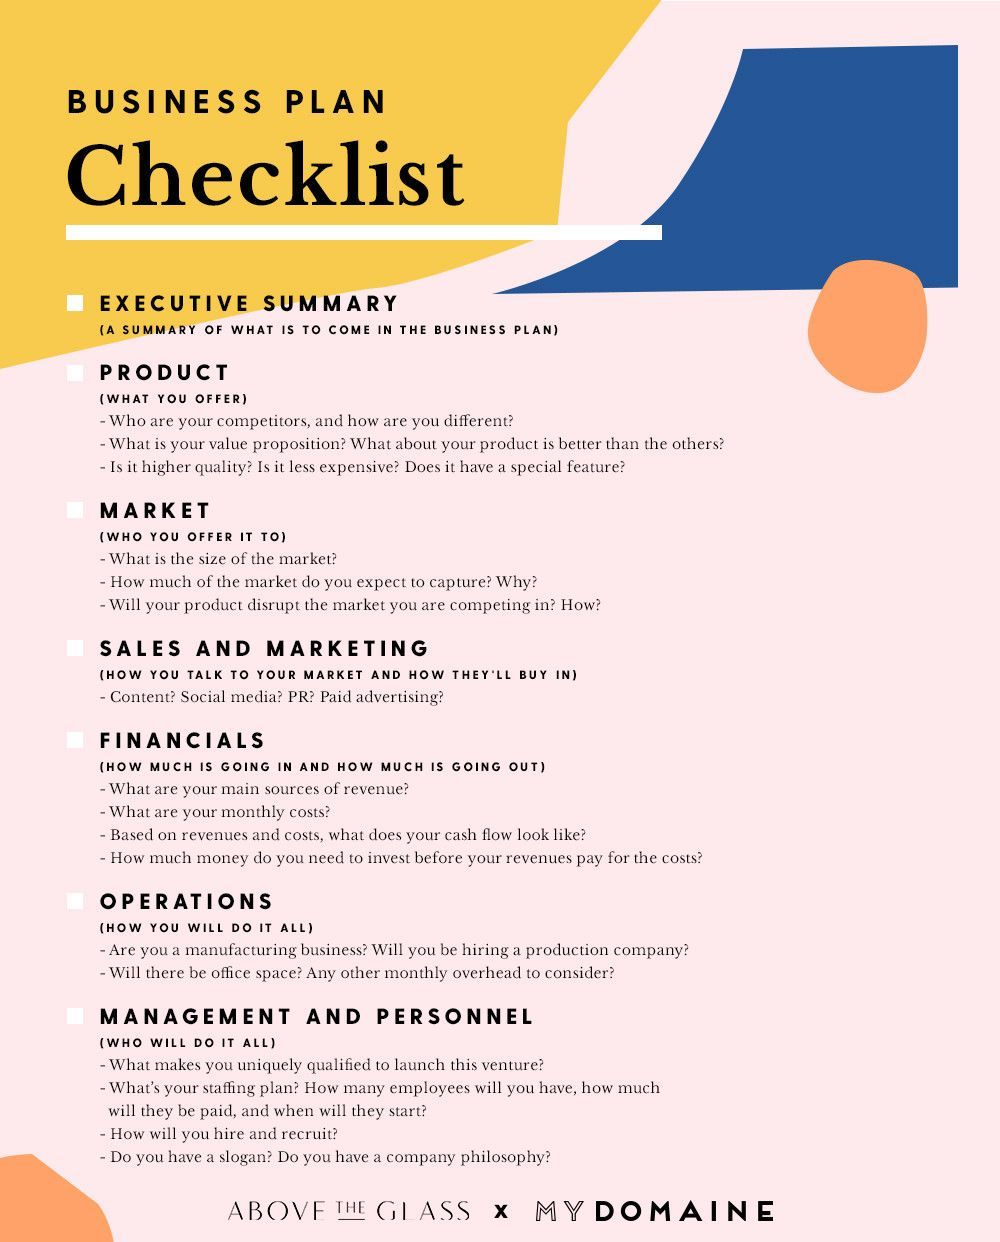 Business Plans 101 How to Write a Business Plan For Any